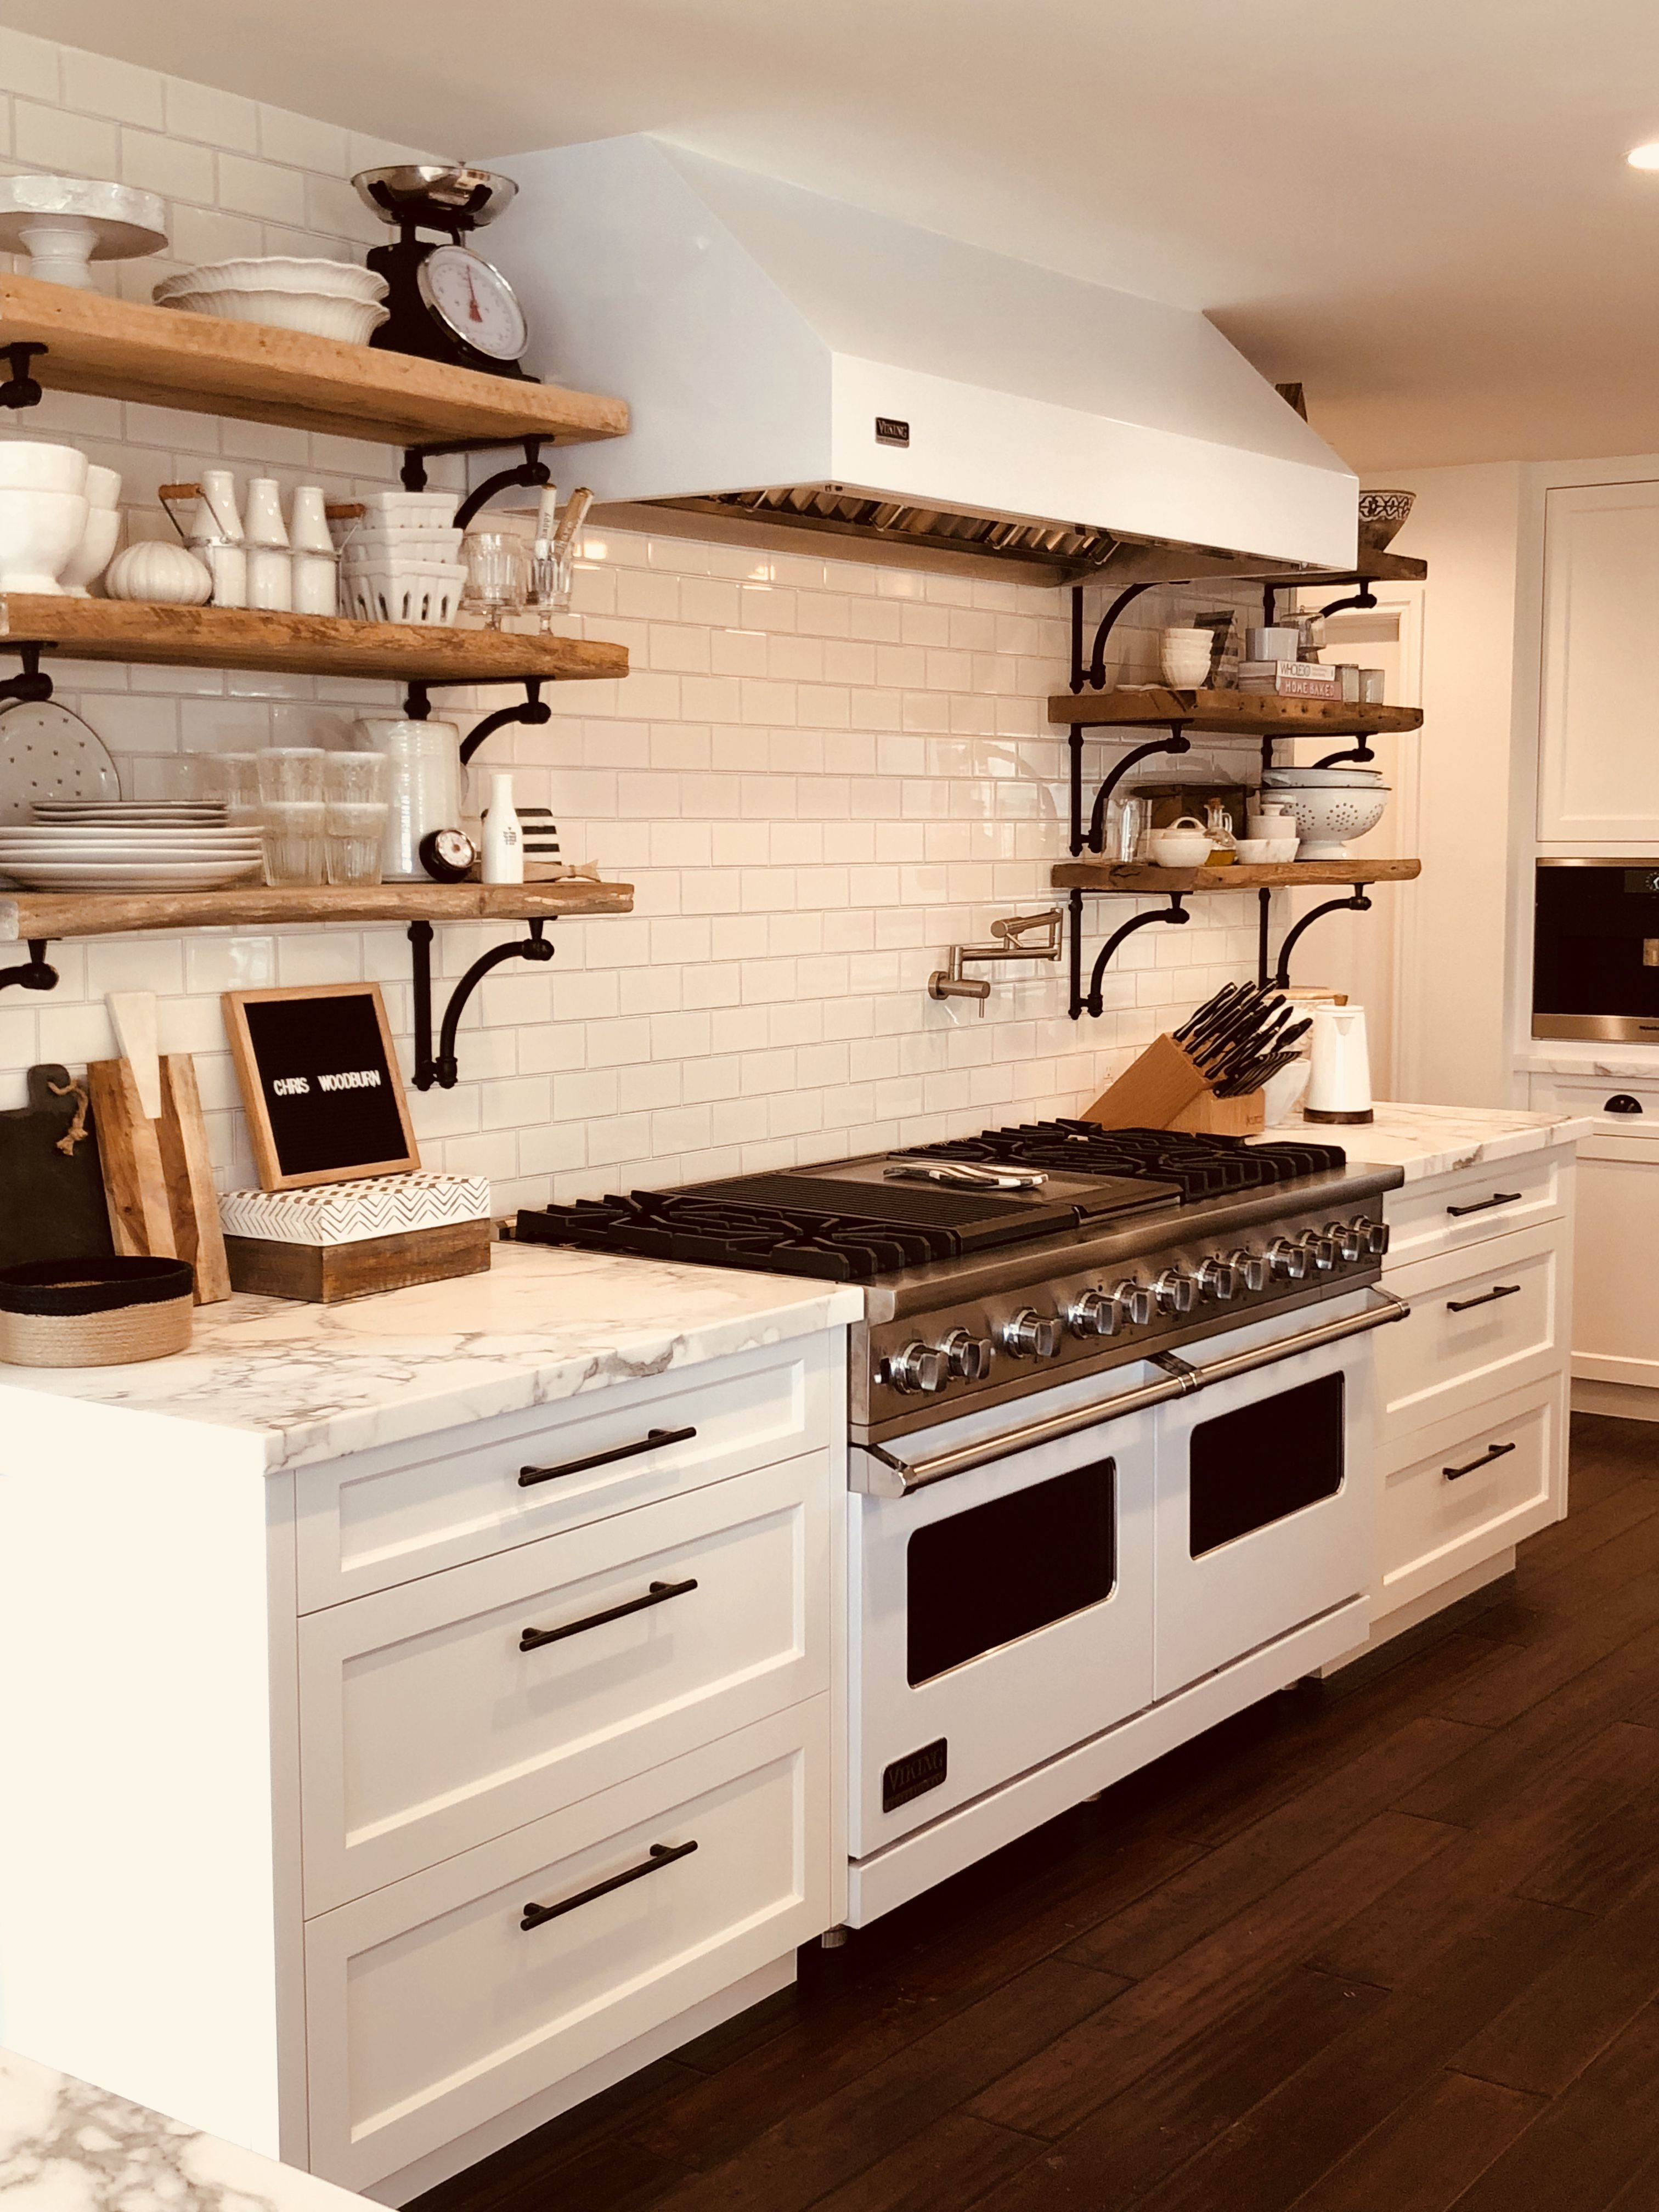 Pin By Chris Woodburn Interiors On Kitchens Kitchen Kitchen Cabinets Home Decor